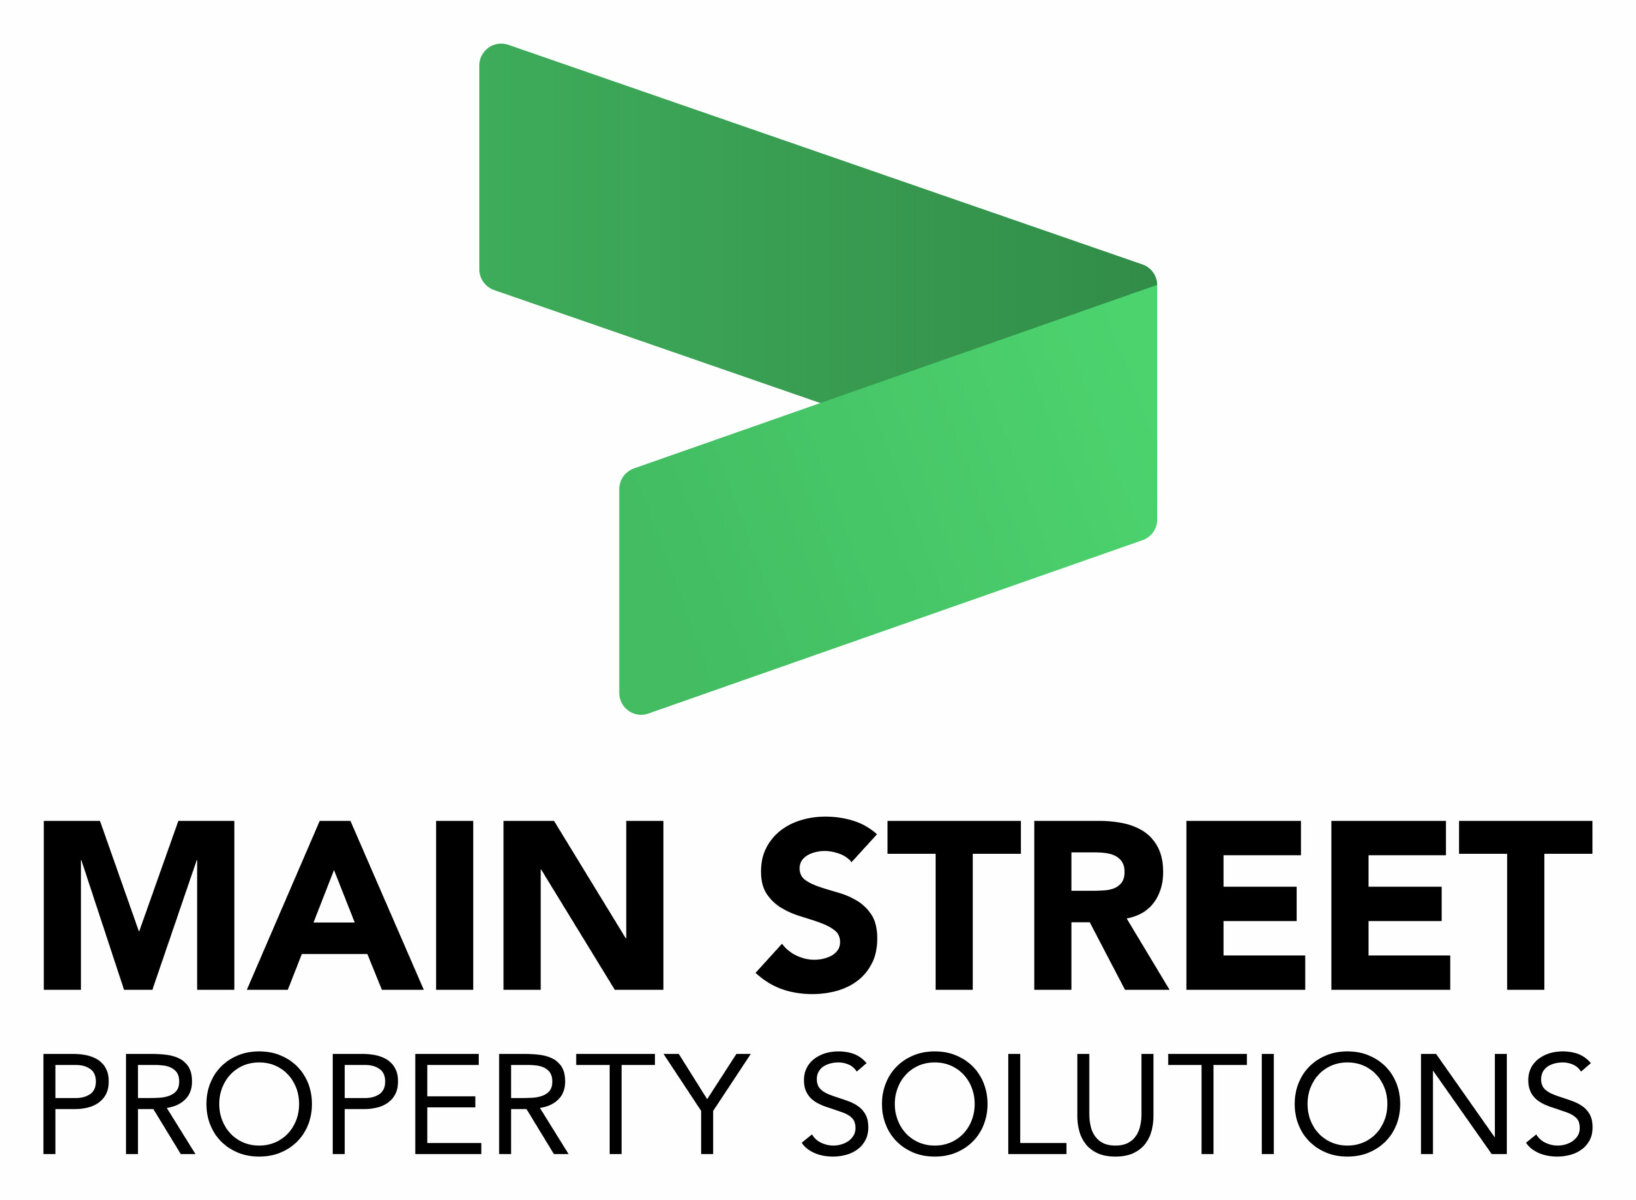 Main Street Property Solutions  logo